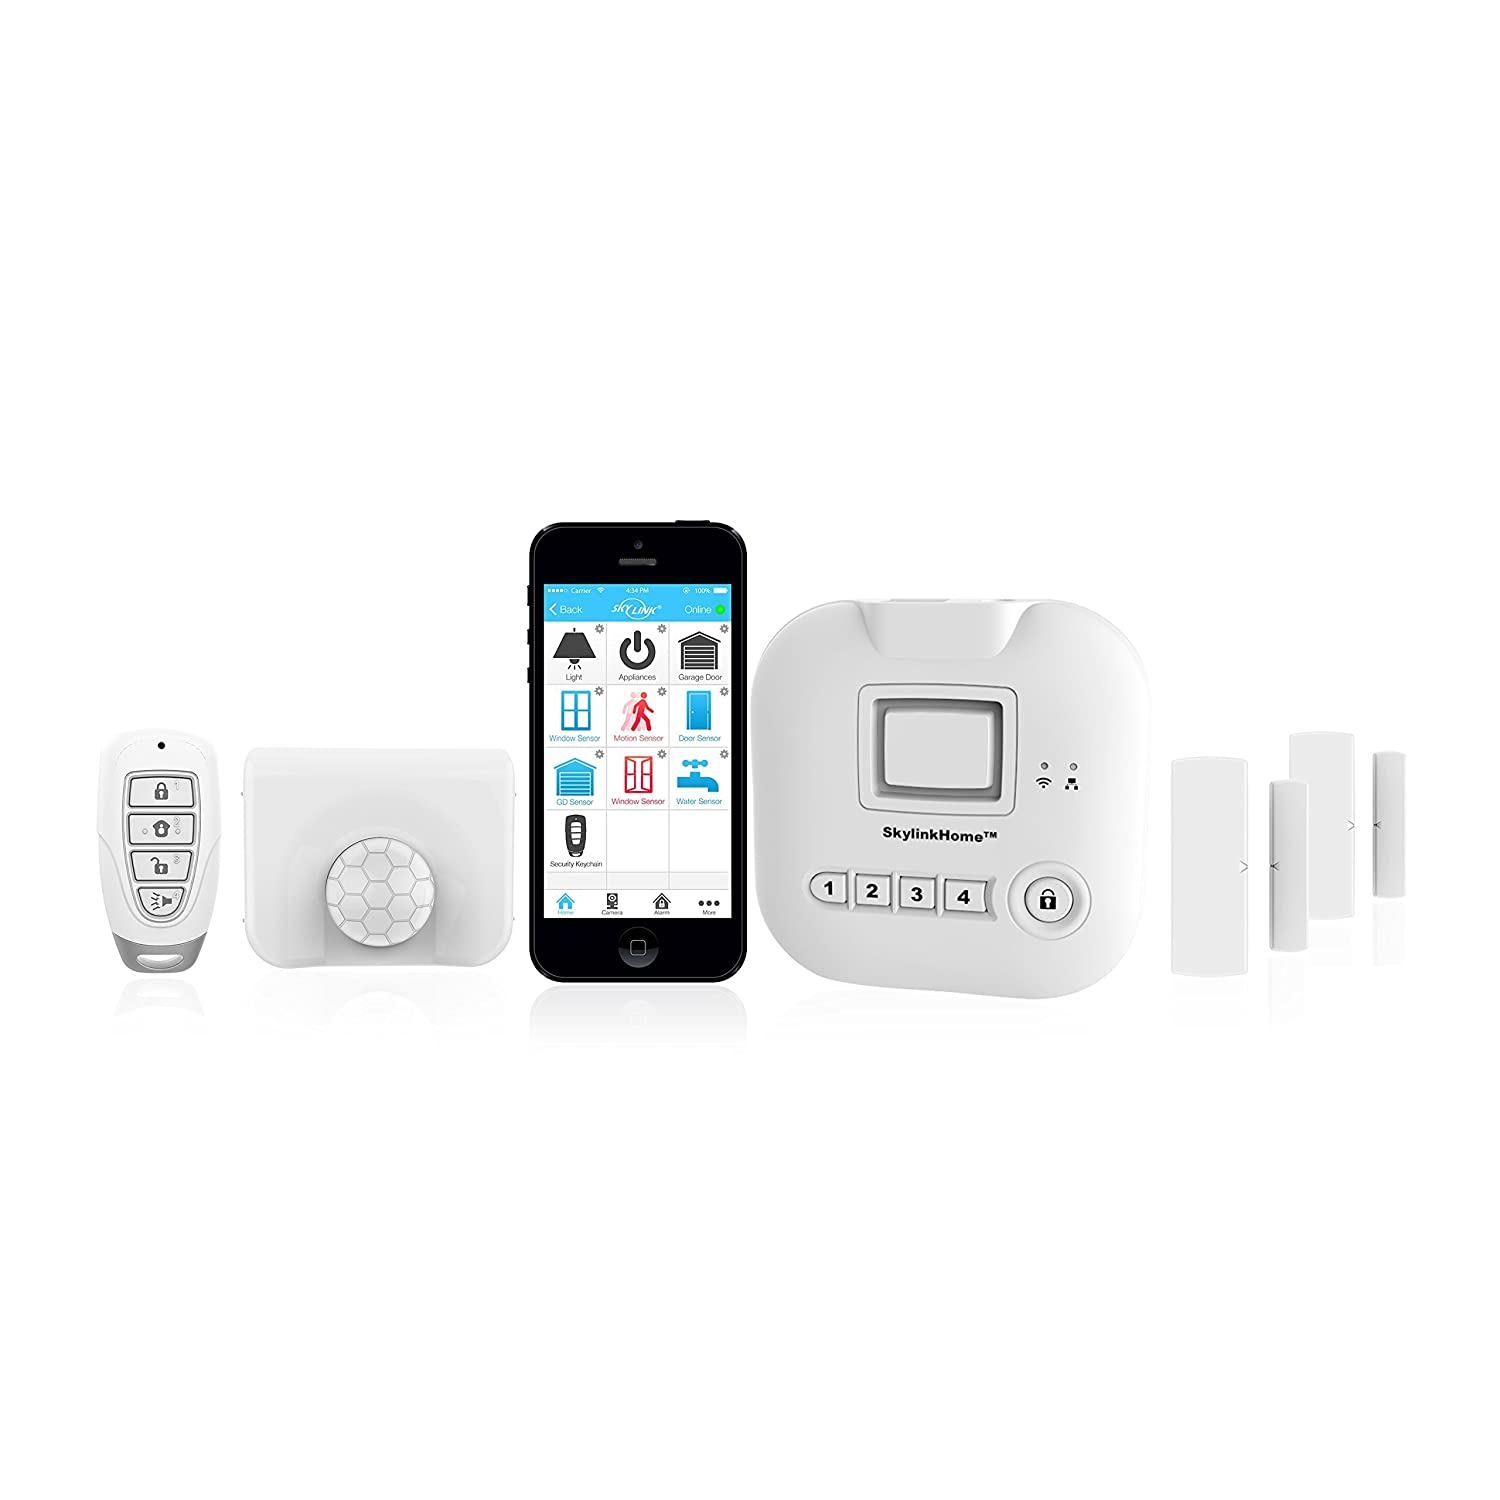 sk200 skylinknet connected wireless alarm system security u0026 home automation system ios iphone android smartphone compatible with no monthly fees